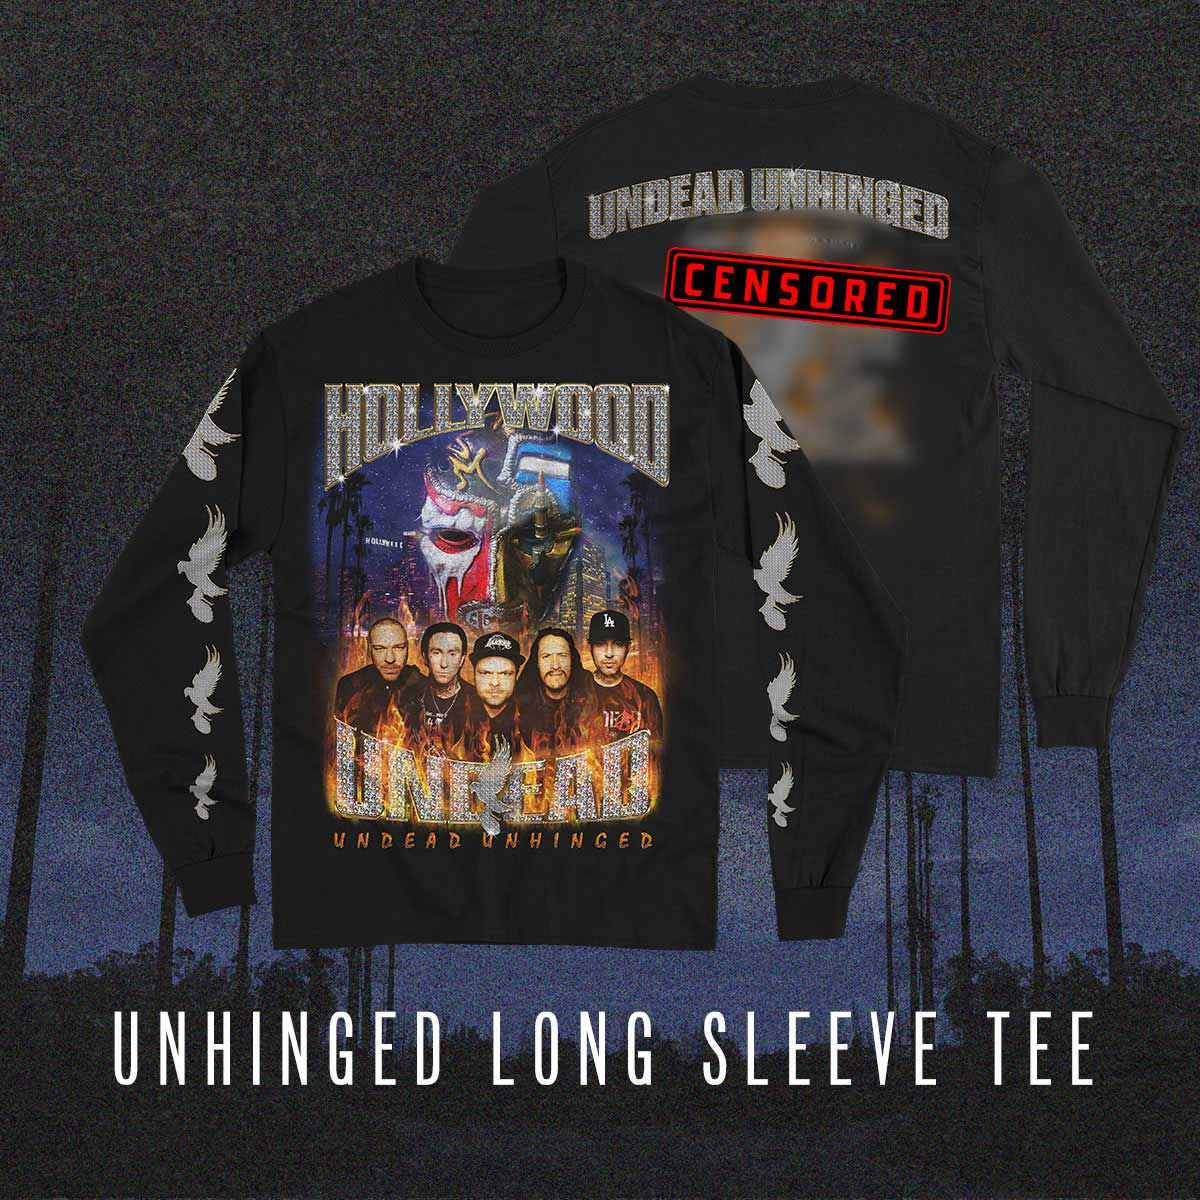 Image of Undead Unhinged Bling Long Sleeve Tee